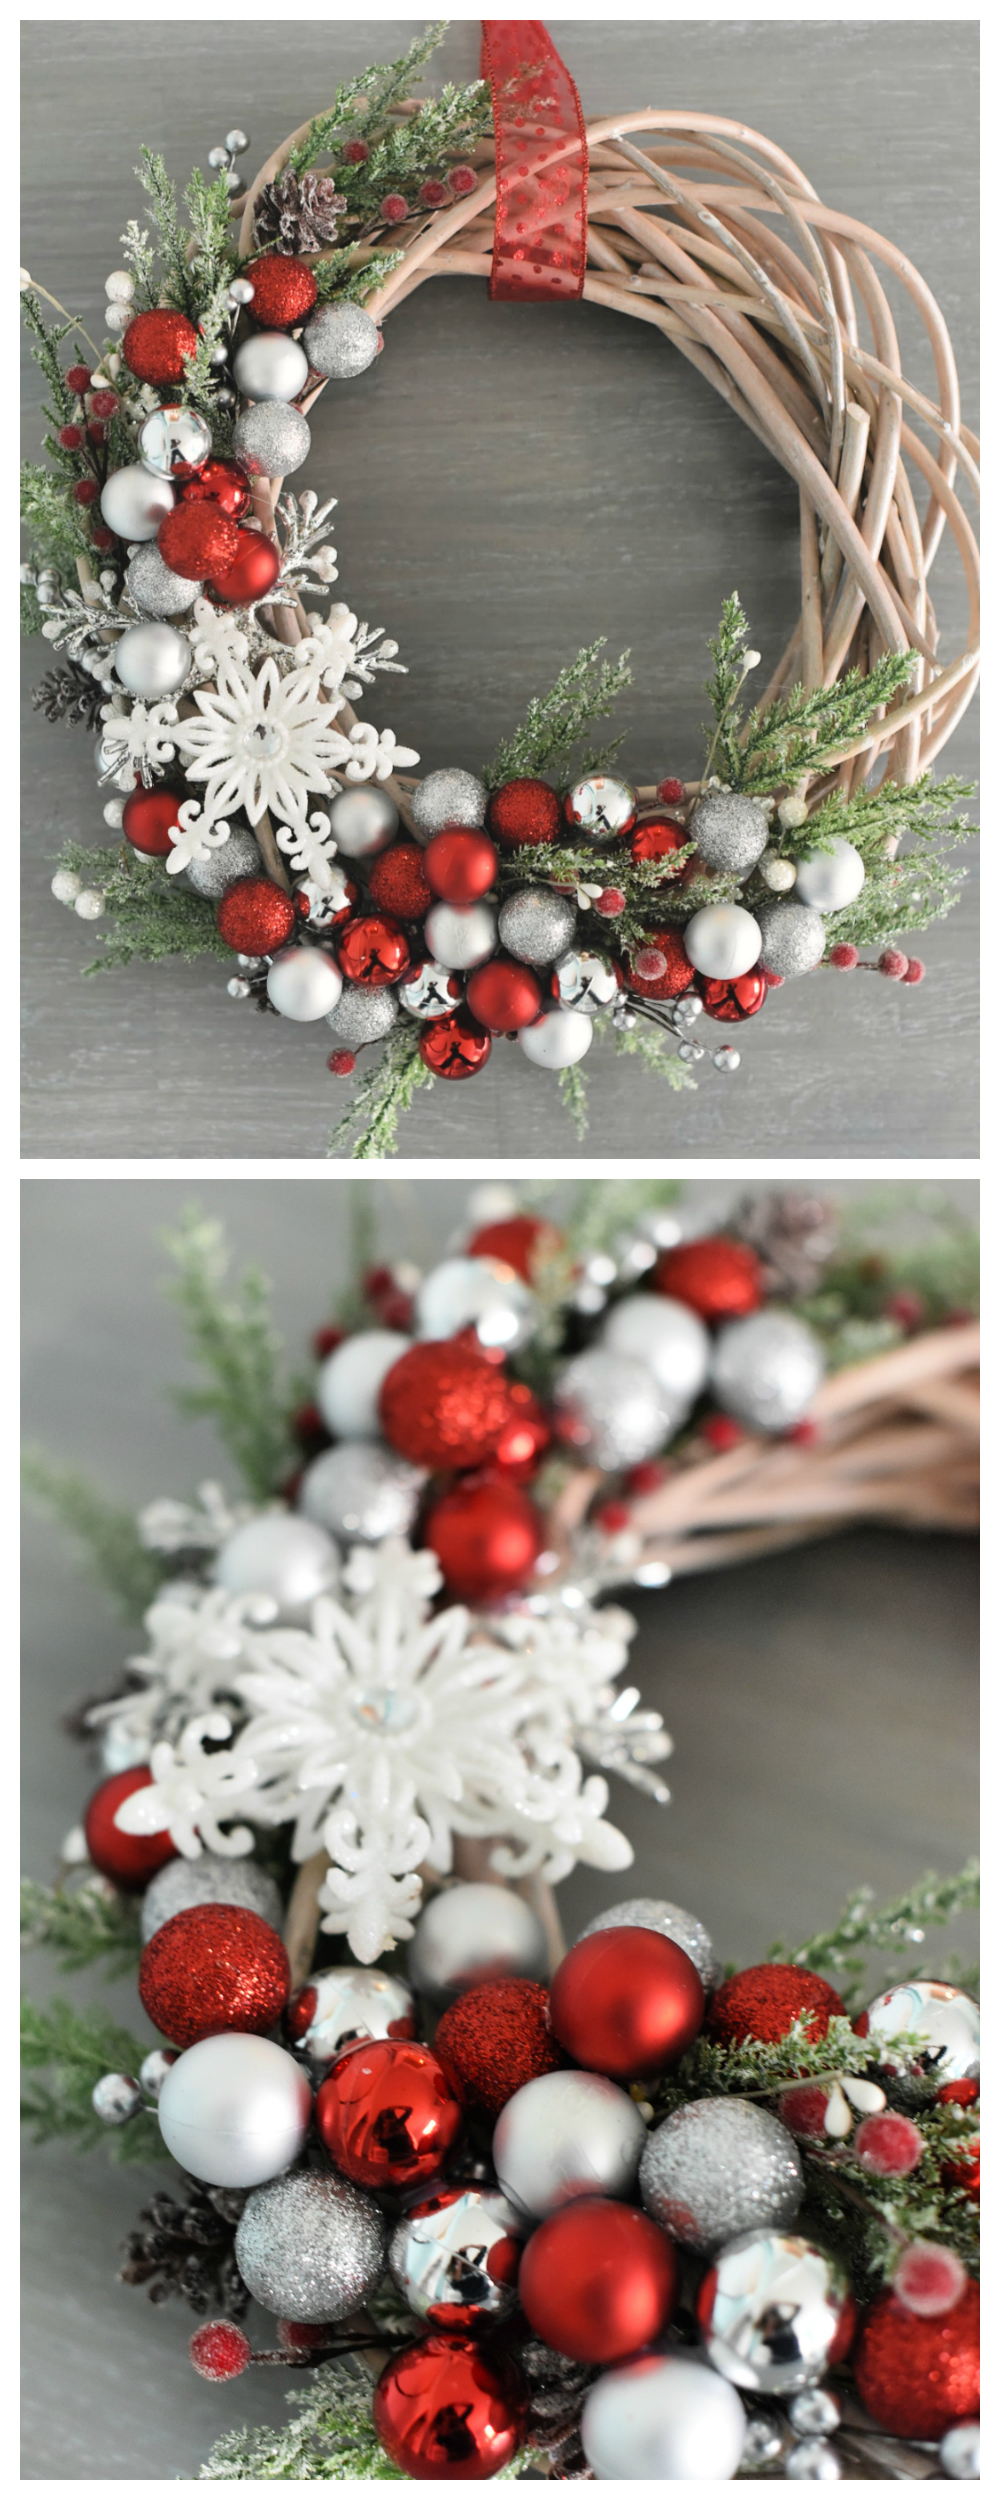 How to Make a Christmas Wreath-This beautiful DIY Christmas wreath turns out beautiful and is fun to make. It will look so festive hanging on your front door for the holidays. #christmaswreath #wreaths #christmasdecor